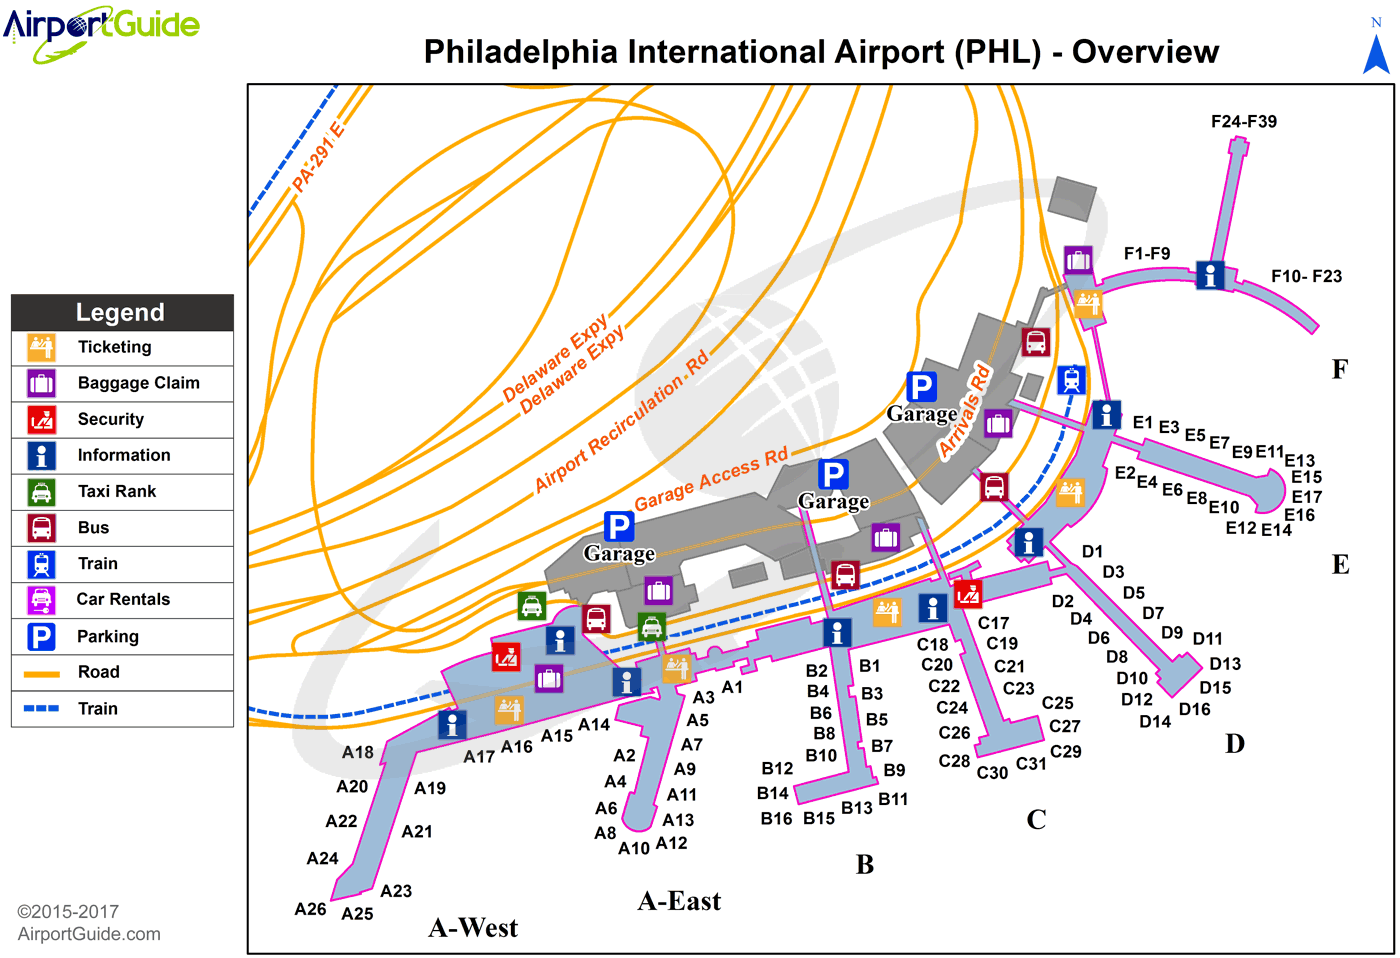 PHL_overview_map.png